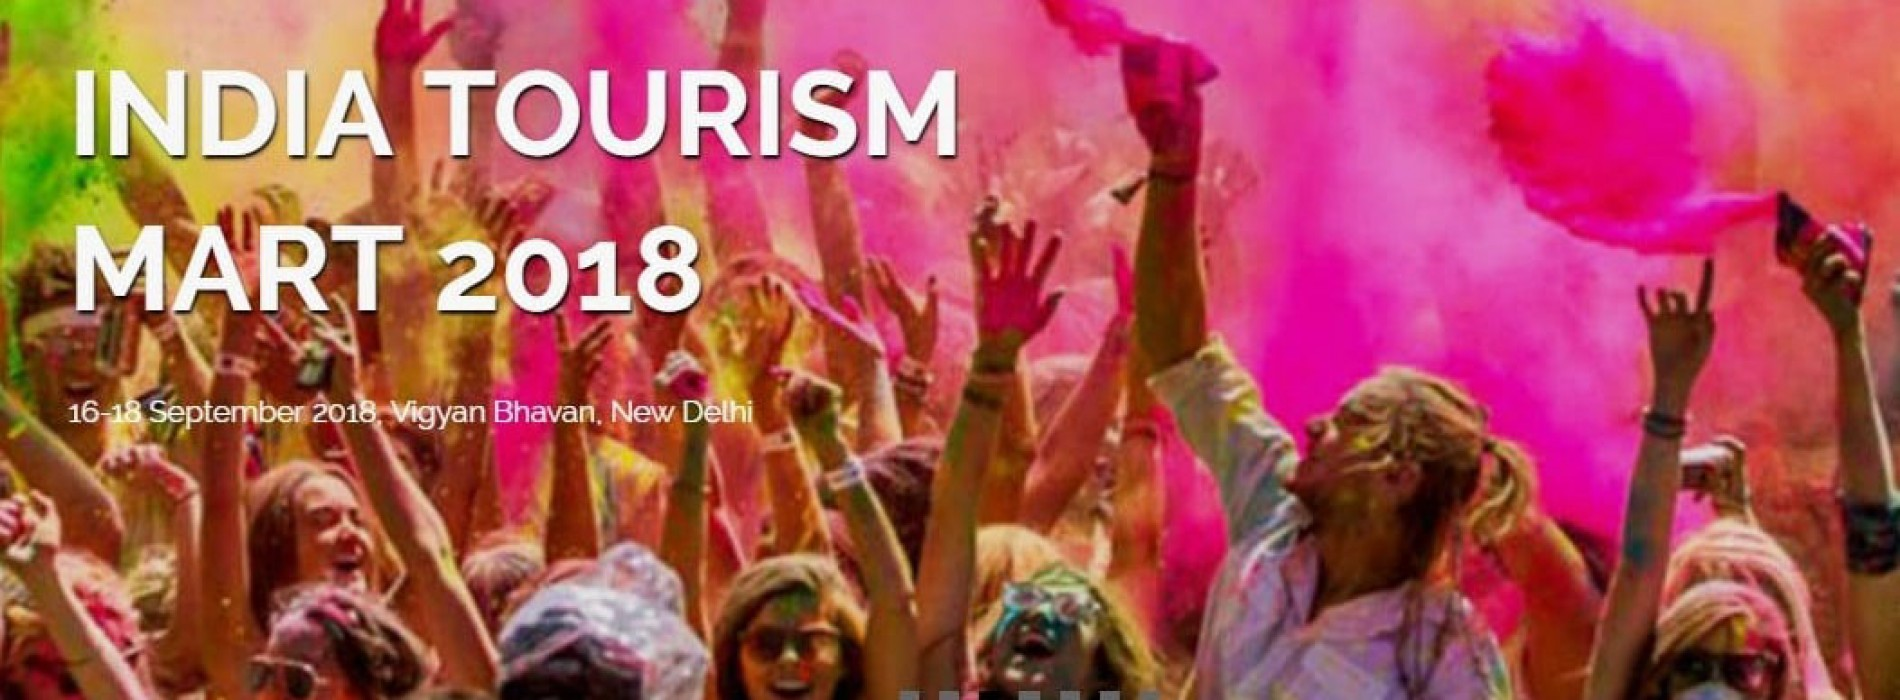 MPTB showcases fast growing tourism sector at ITM in New Delhi